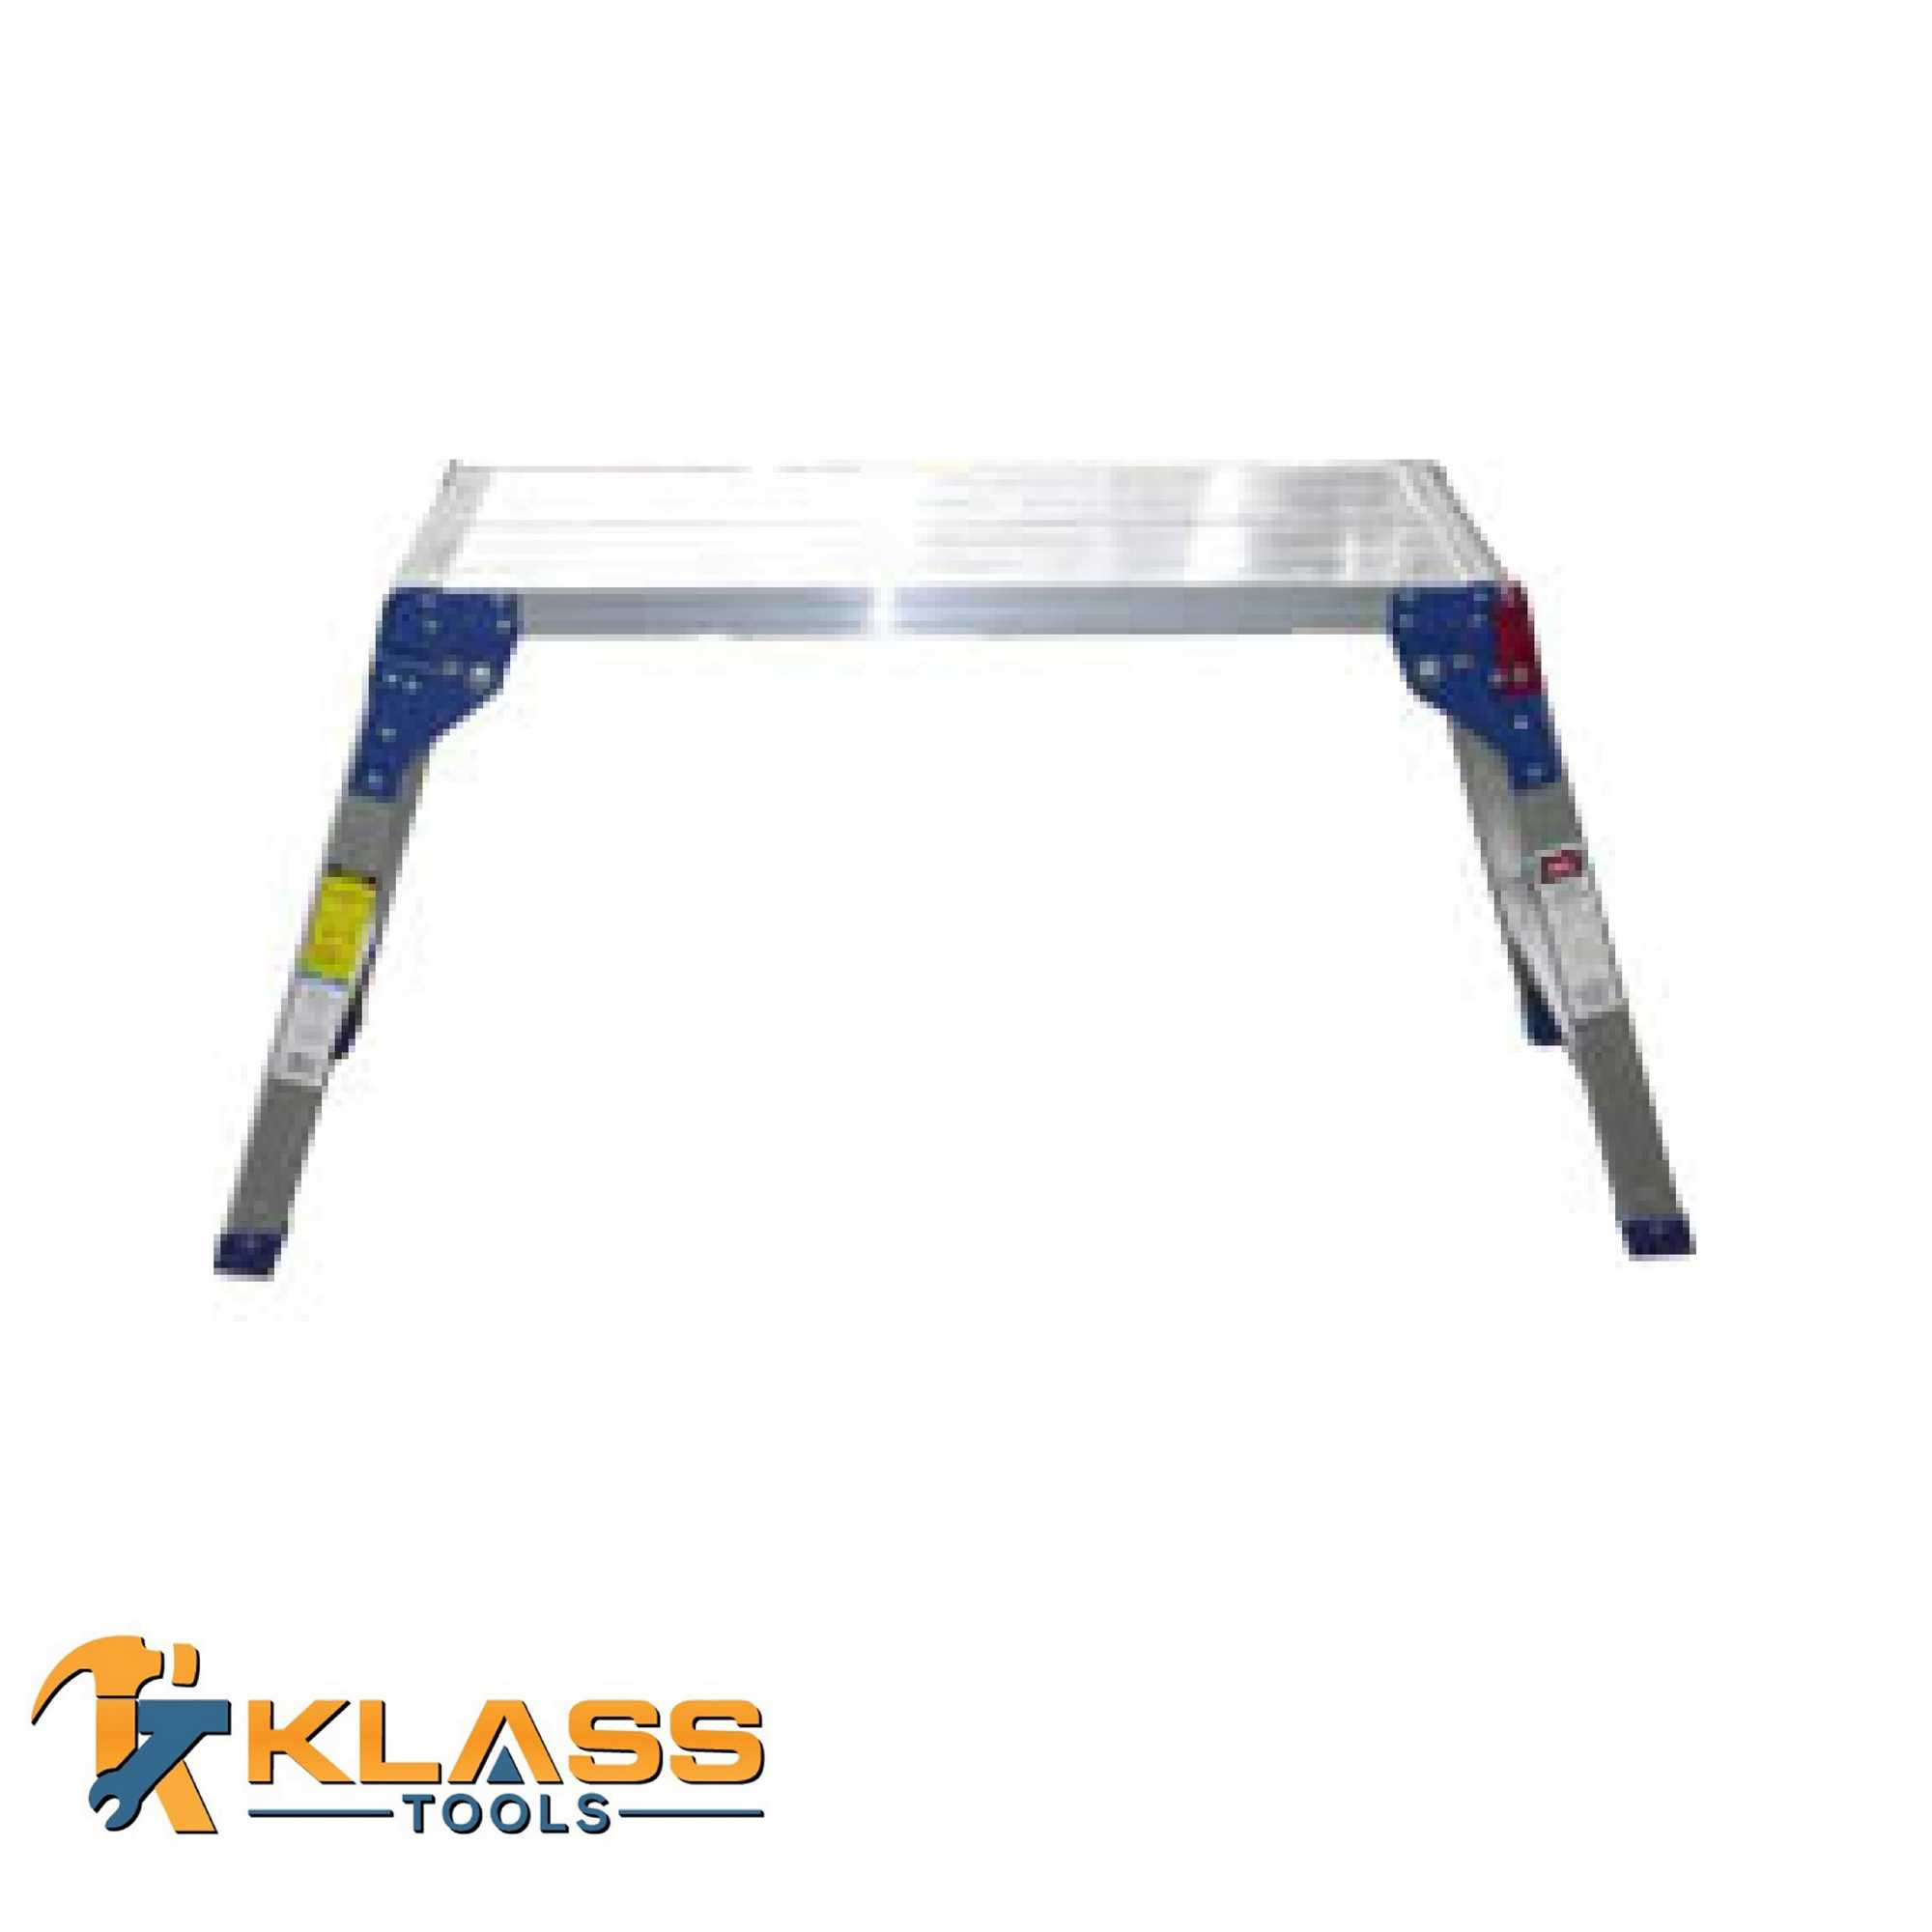 WORK BENCH WP-608